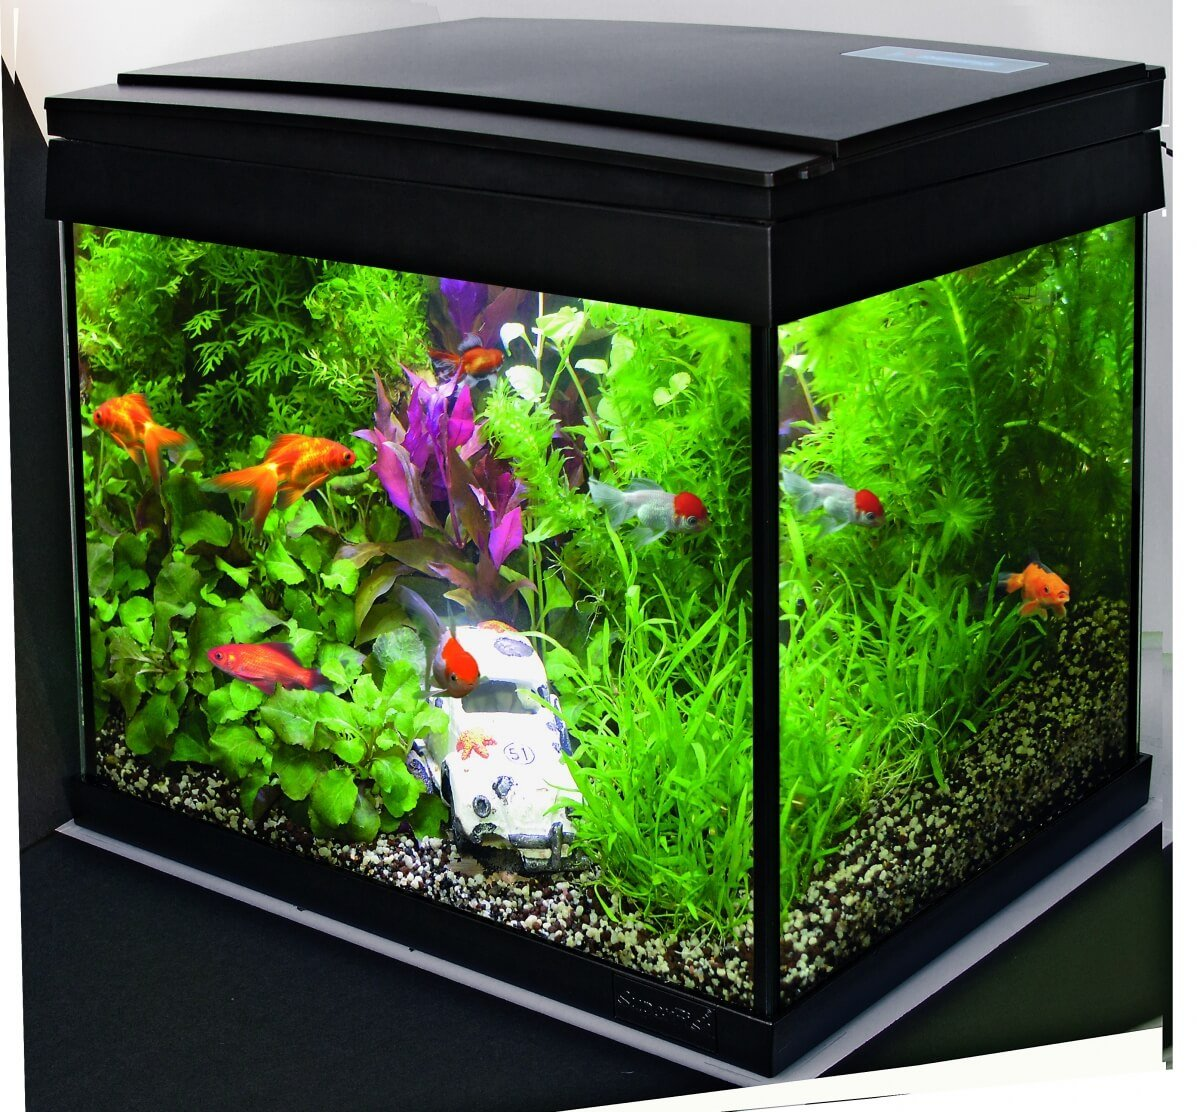 Aquarium aqua 20 led kit poisson rouge aquarium et meuble for Avoir un aquarium poisson rouge